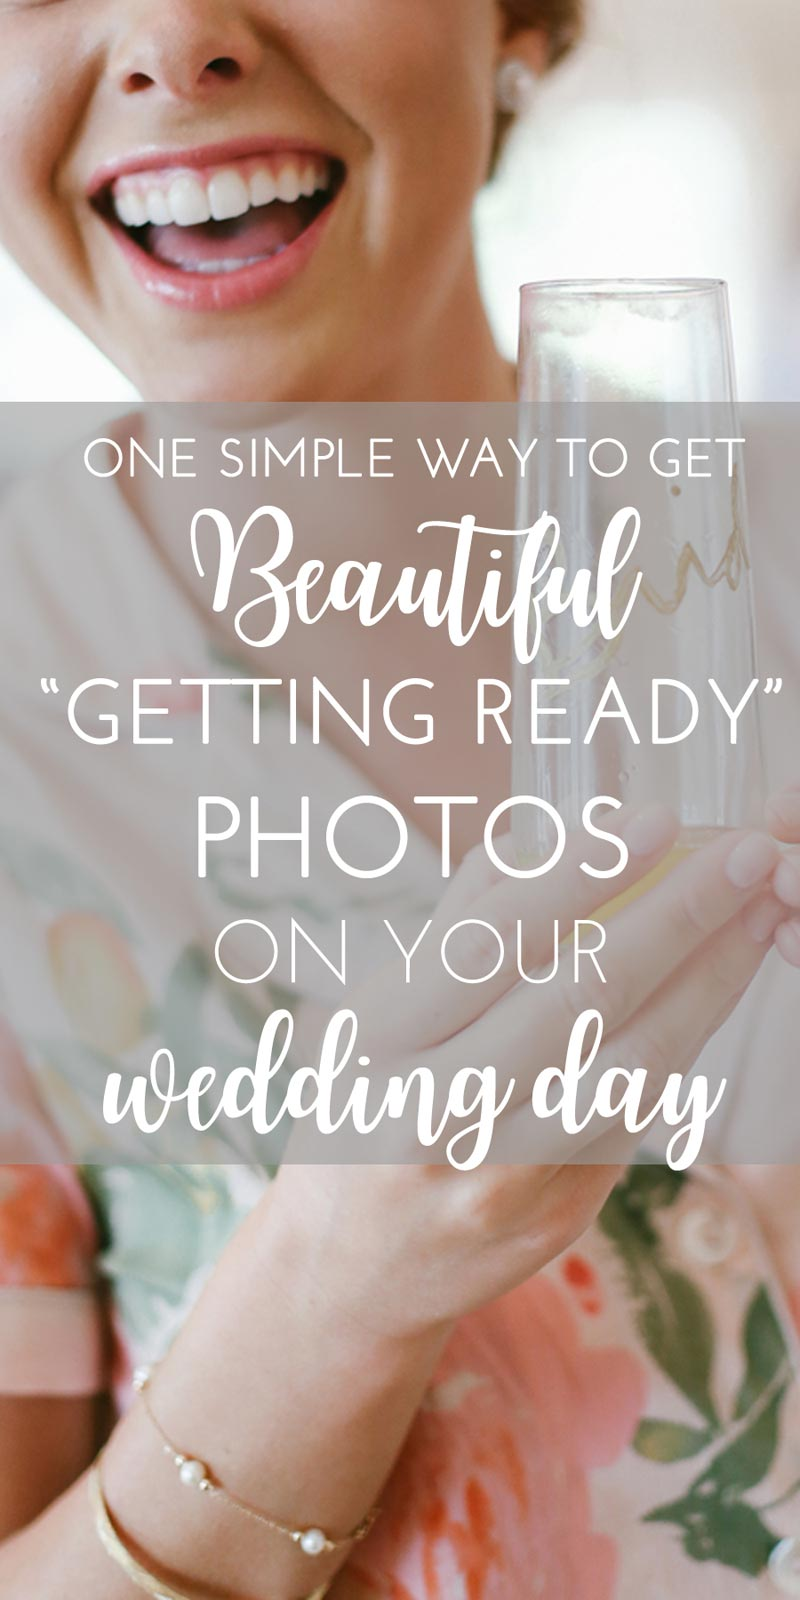 one simple way to get beautiful getting ready photos on your wedding day